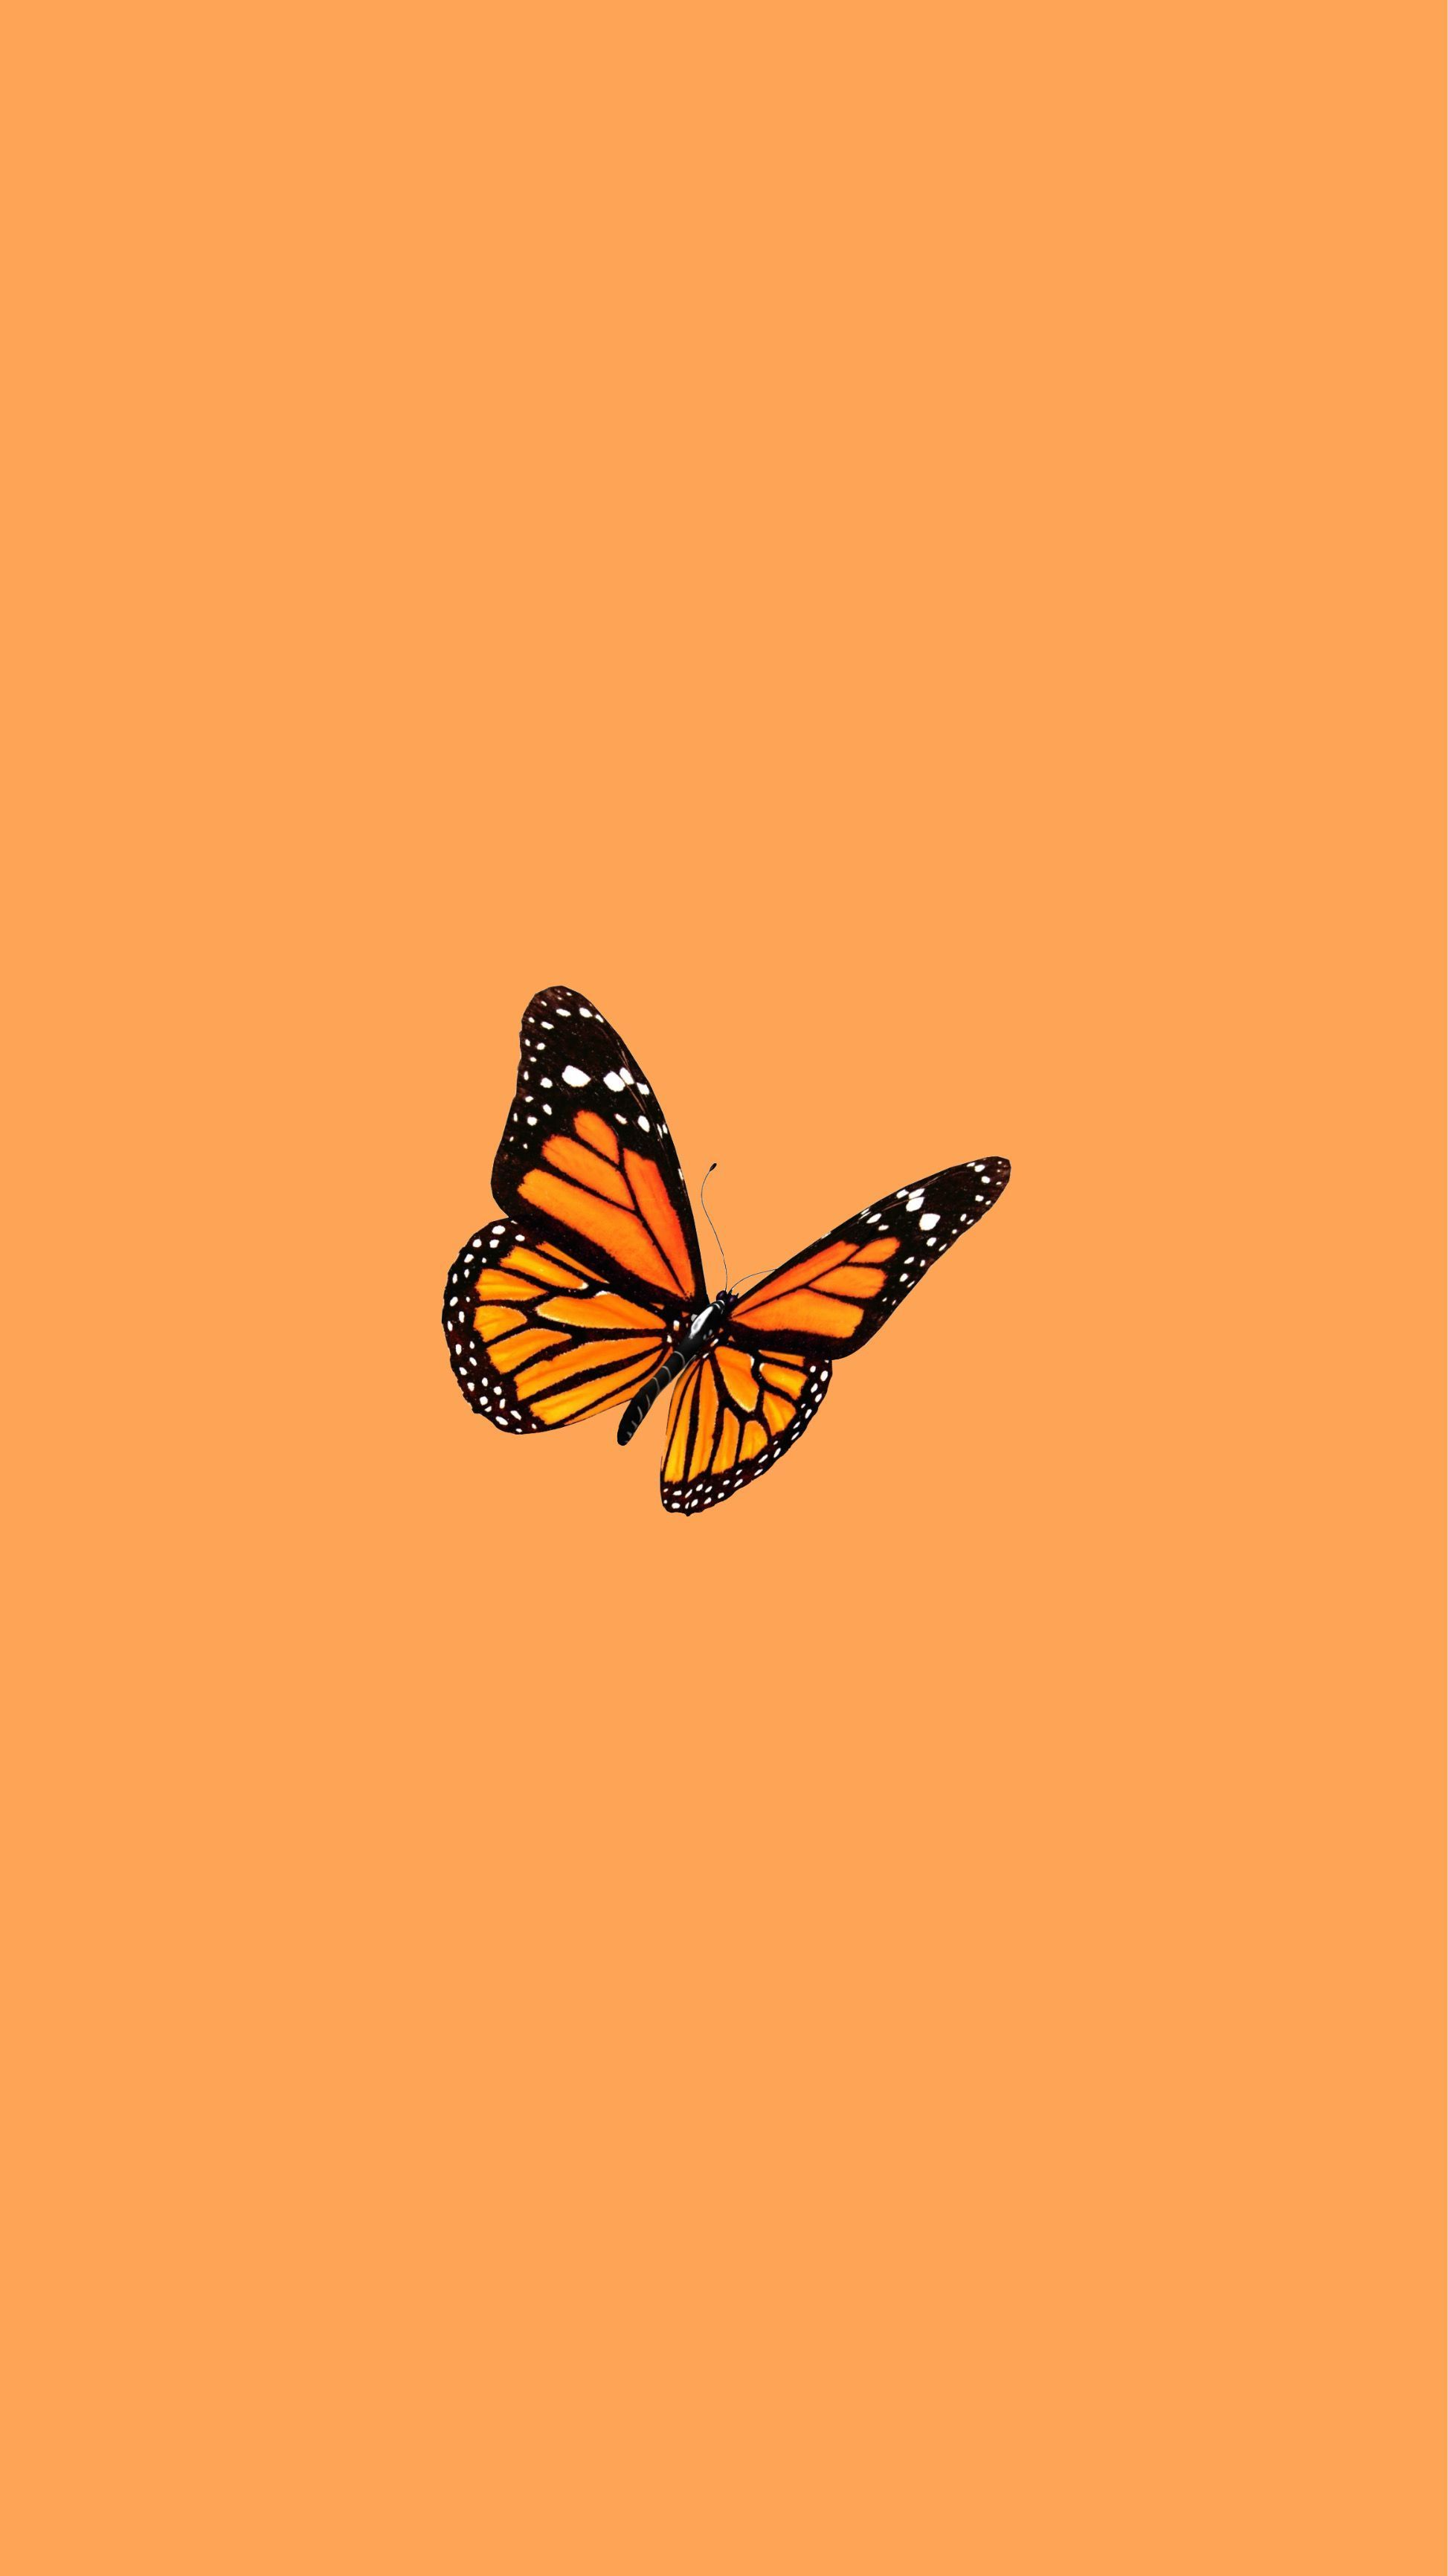 Orange Aesthetic Discover Butterfly Wallpaper Orange Wallpaper Butterfly Wallpaper Orange Aesthetic